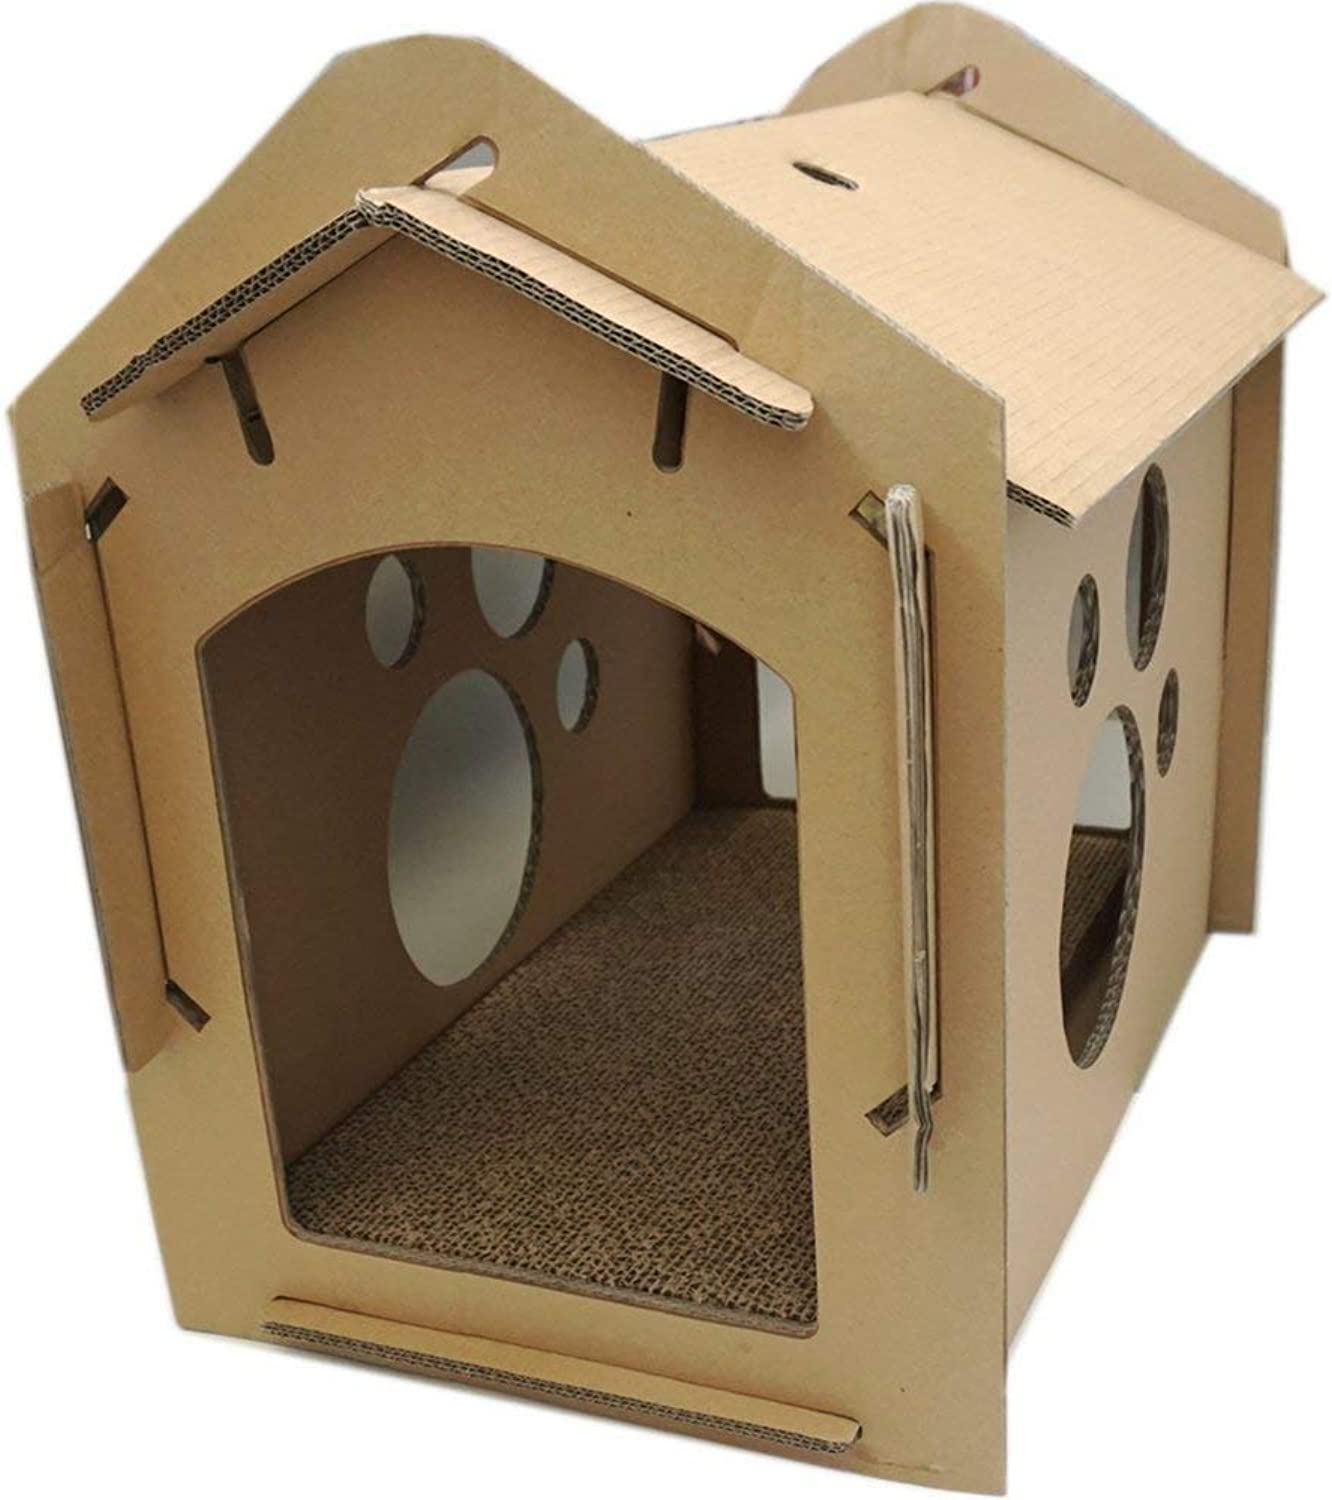 Cat Scratch Cat House Recyclable Cardboard DIY Assembly Predect Your Furniture Scratchpad Mat Cat Indoor Apartment Activity Center